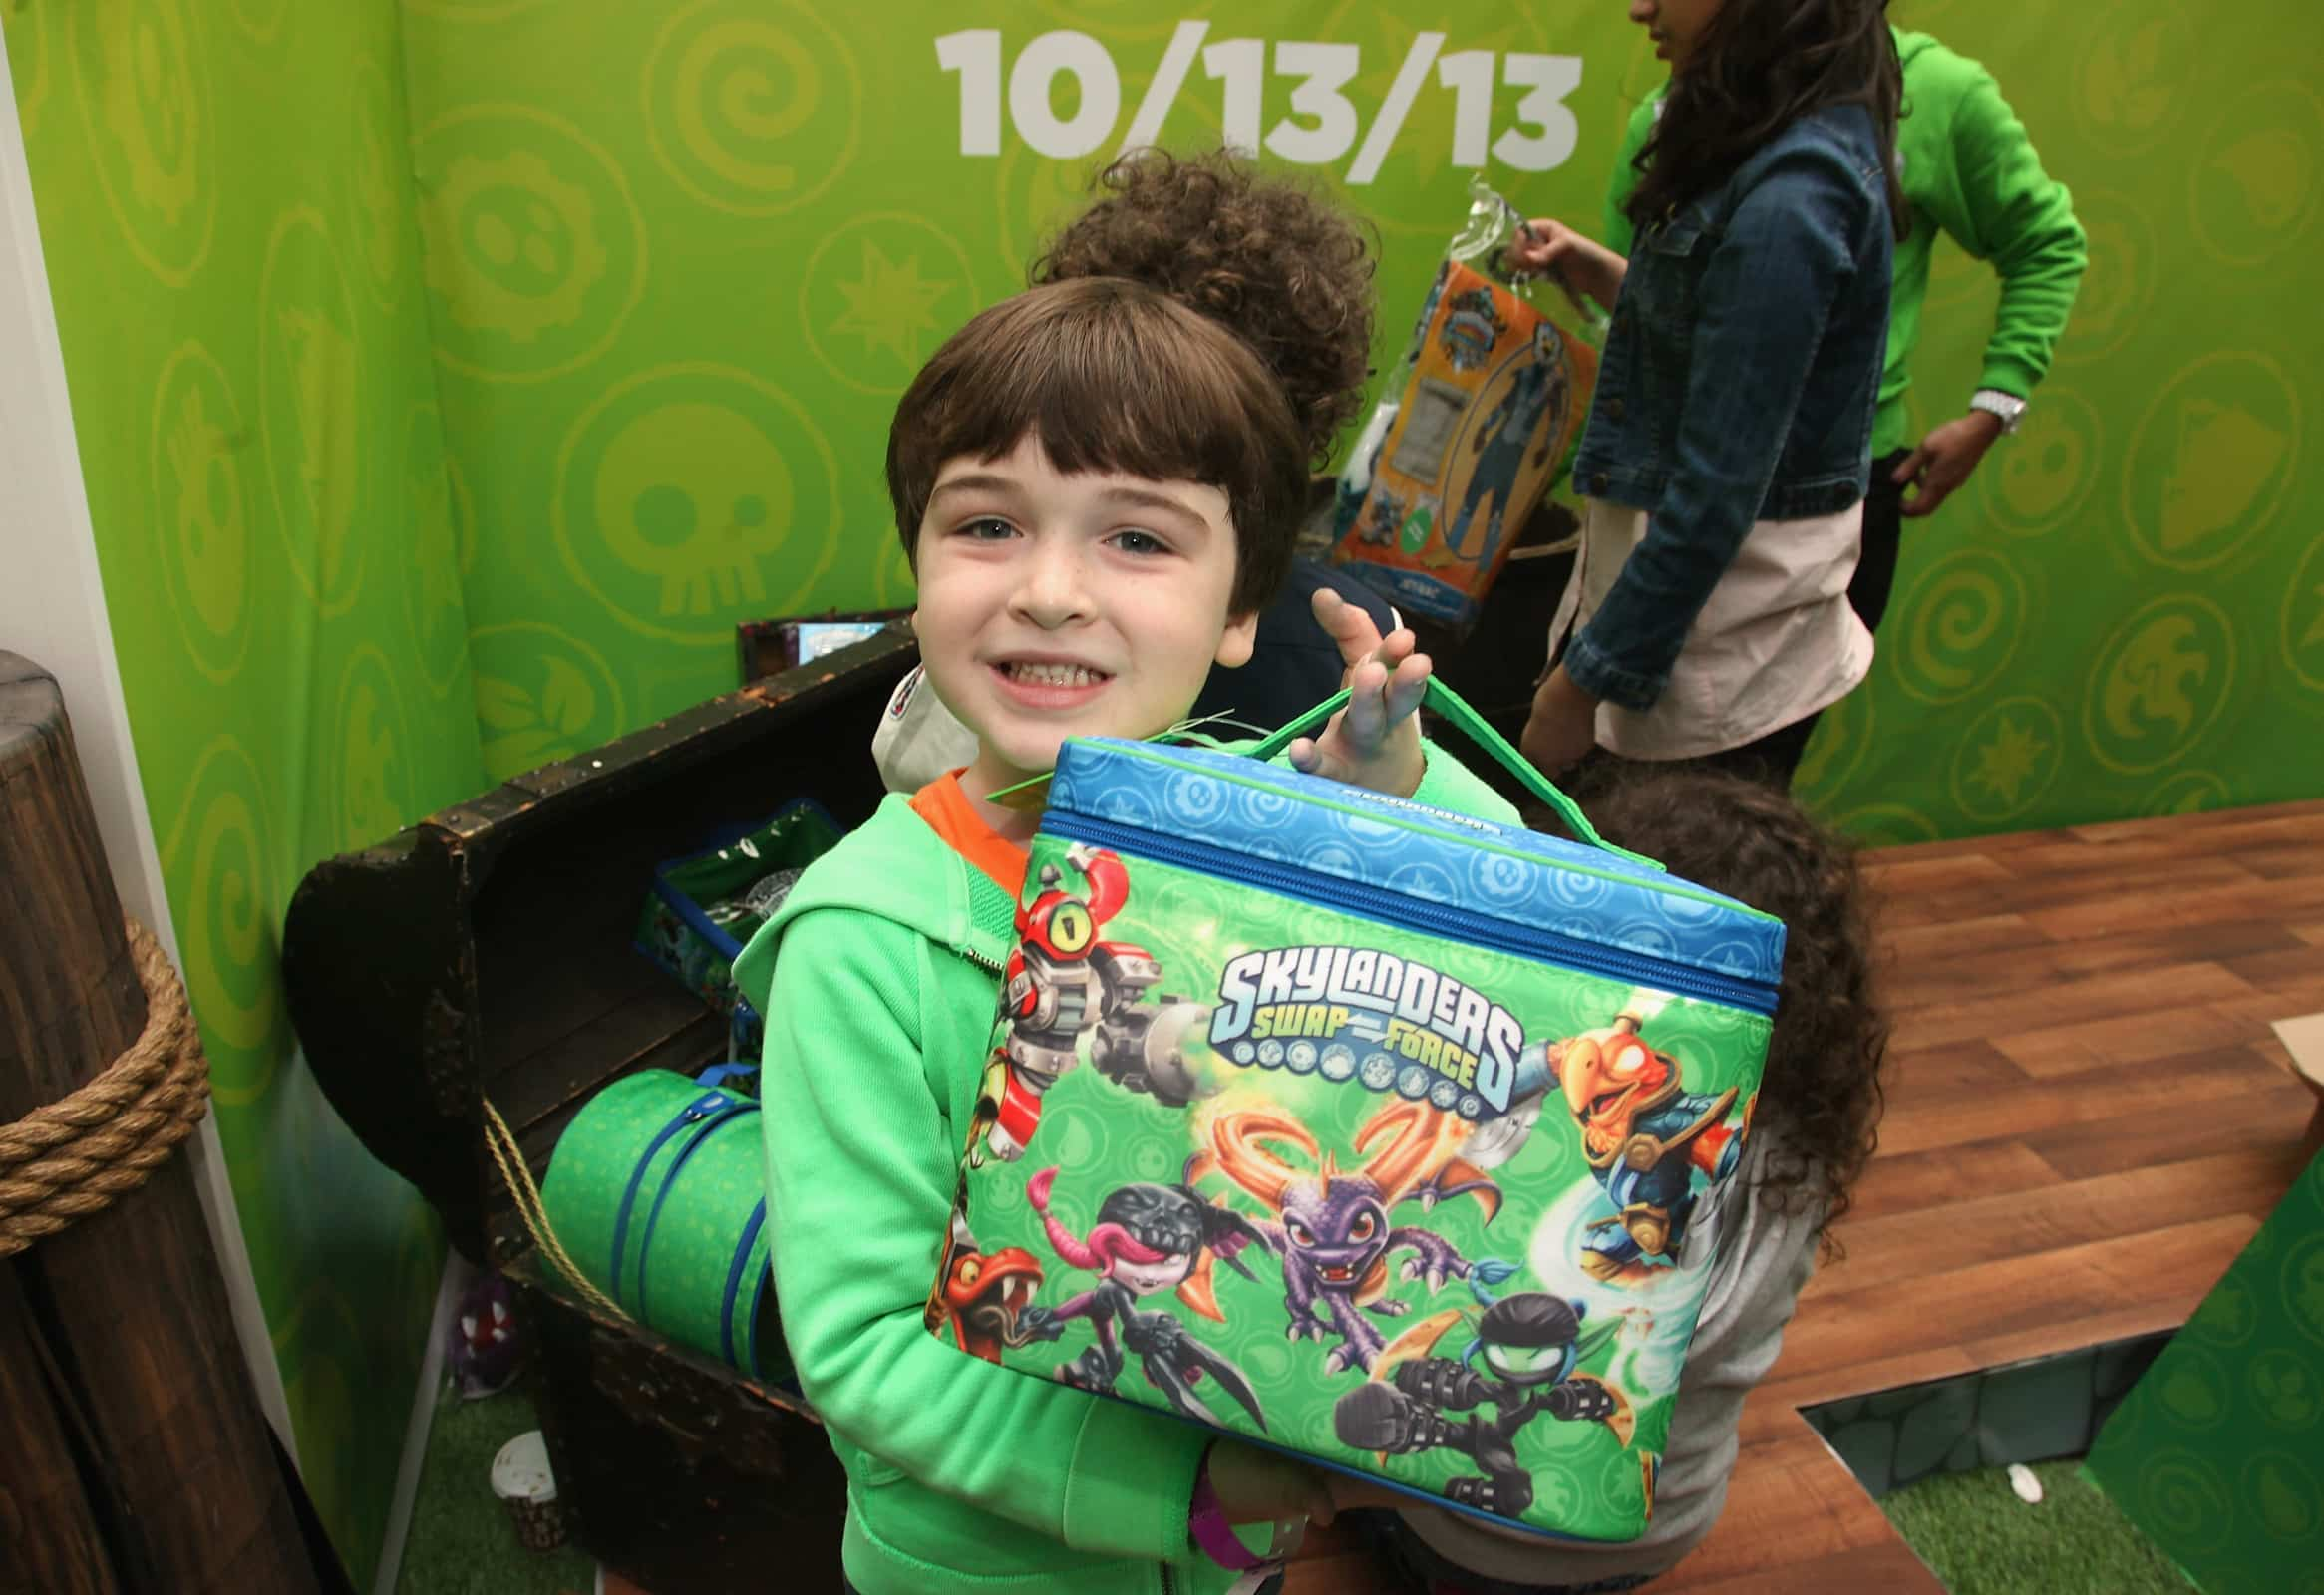 SKYLANDERS SWAP FORCE is finally here!